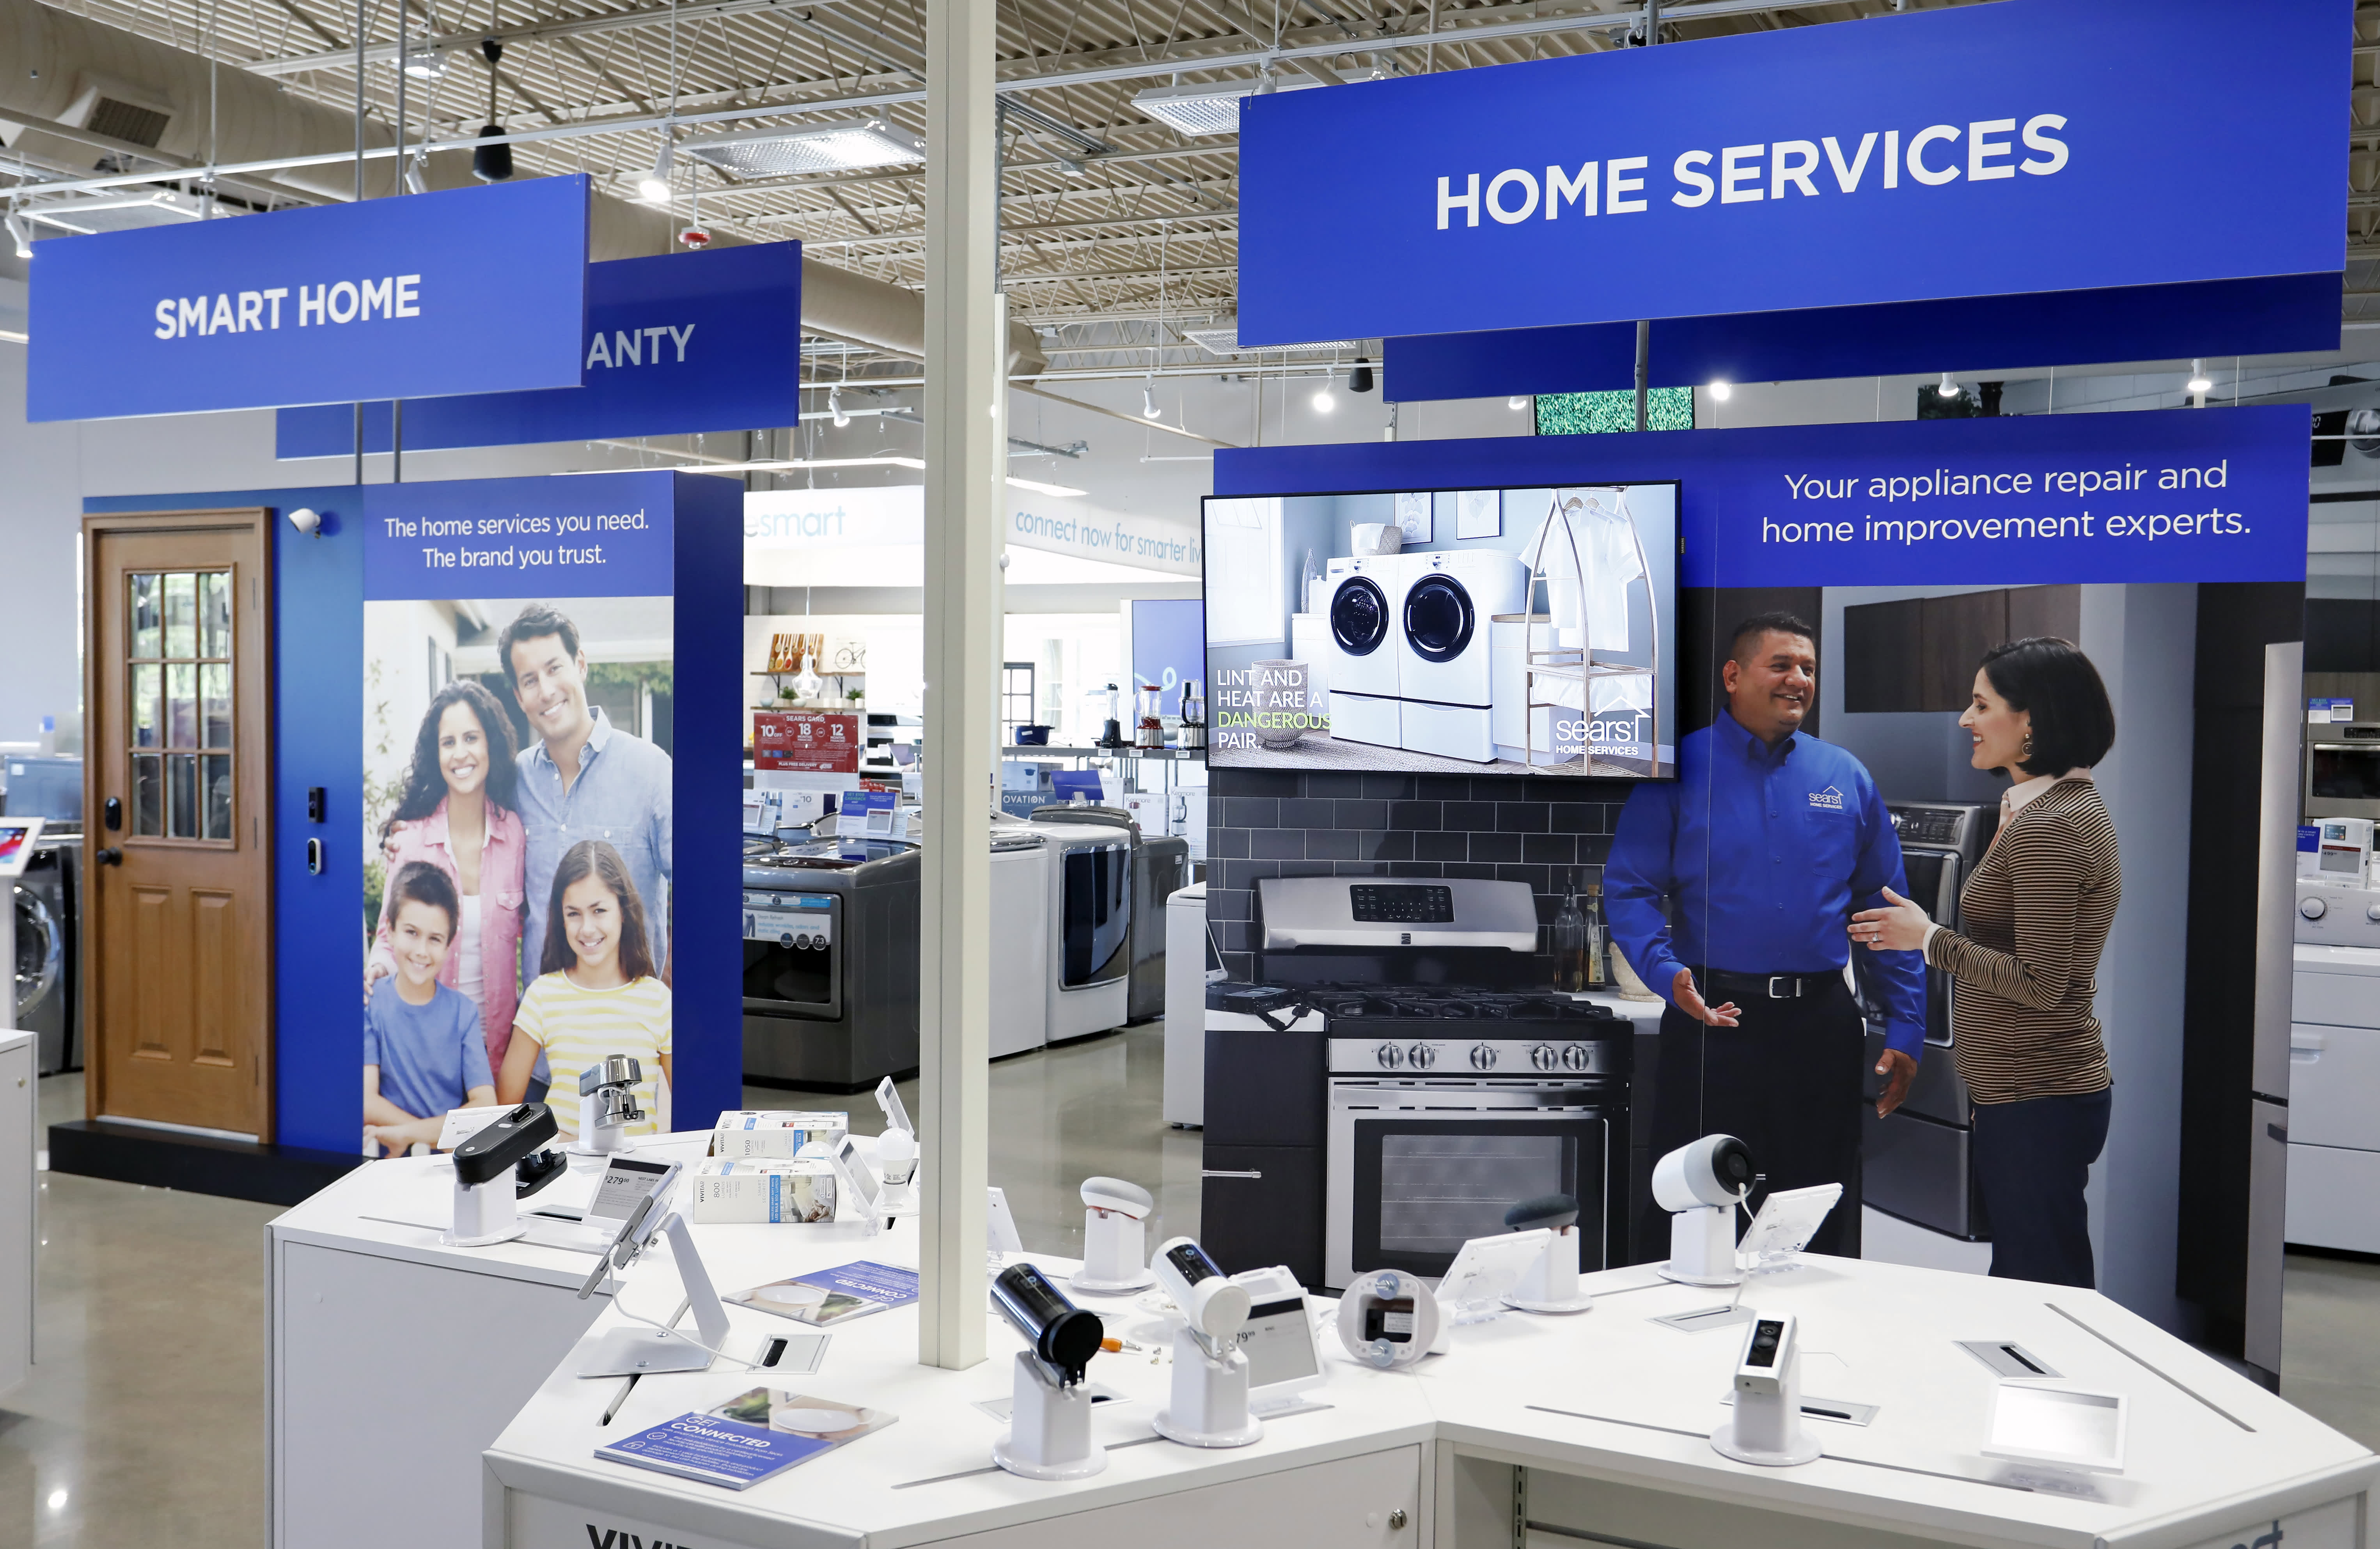 Sears pins its future on small stores selling appliances, mattresses. Here's what that looks like